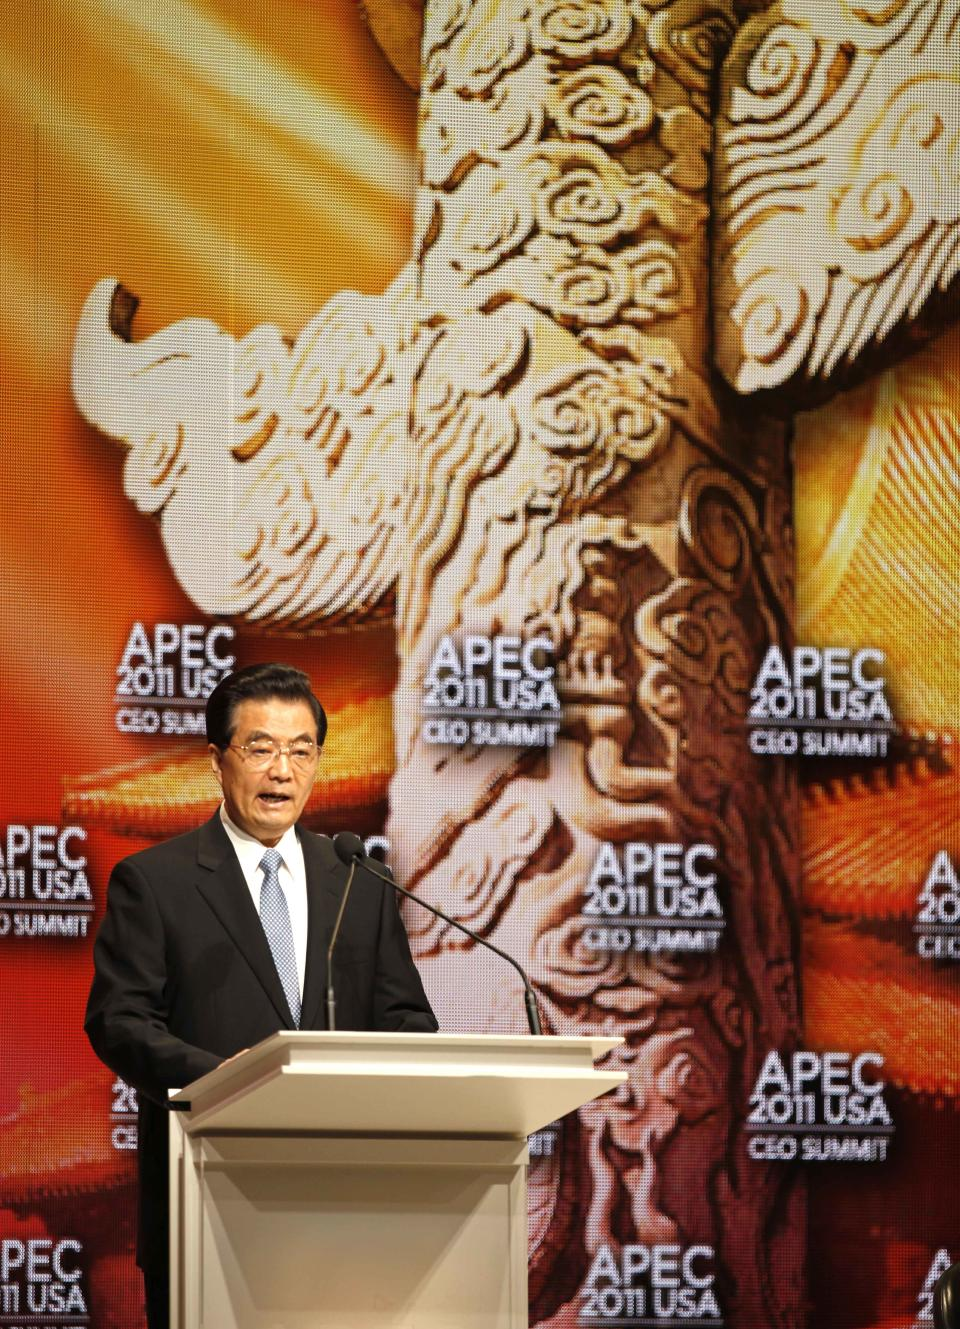 Chinese President Hu Jintao addresses the APEC CEO Summit, a gathering of business leaders at the Asia-Pacific Economic Cooperation summit Saturday, Nov. 12, 2011, in Honolulu. (AP Photo/Andres Leighton)